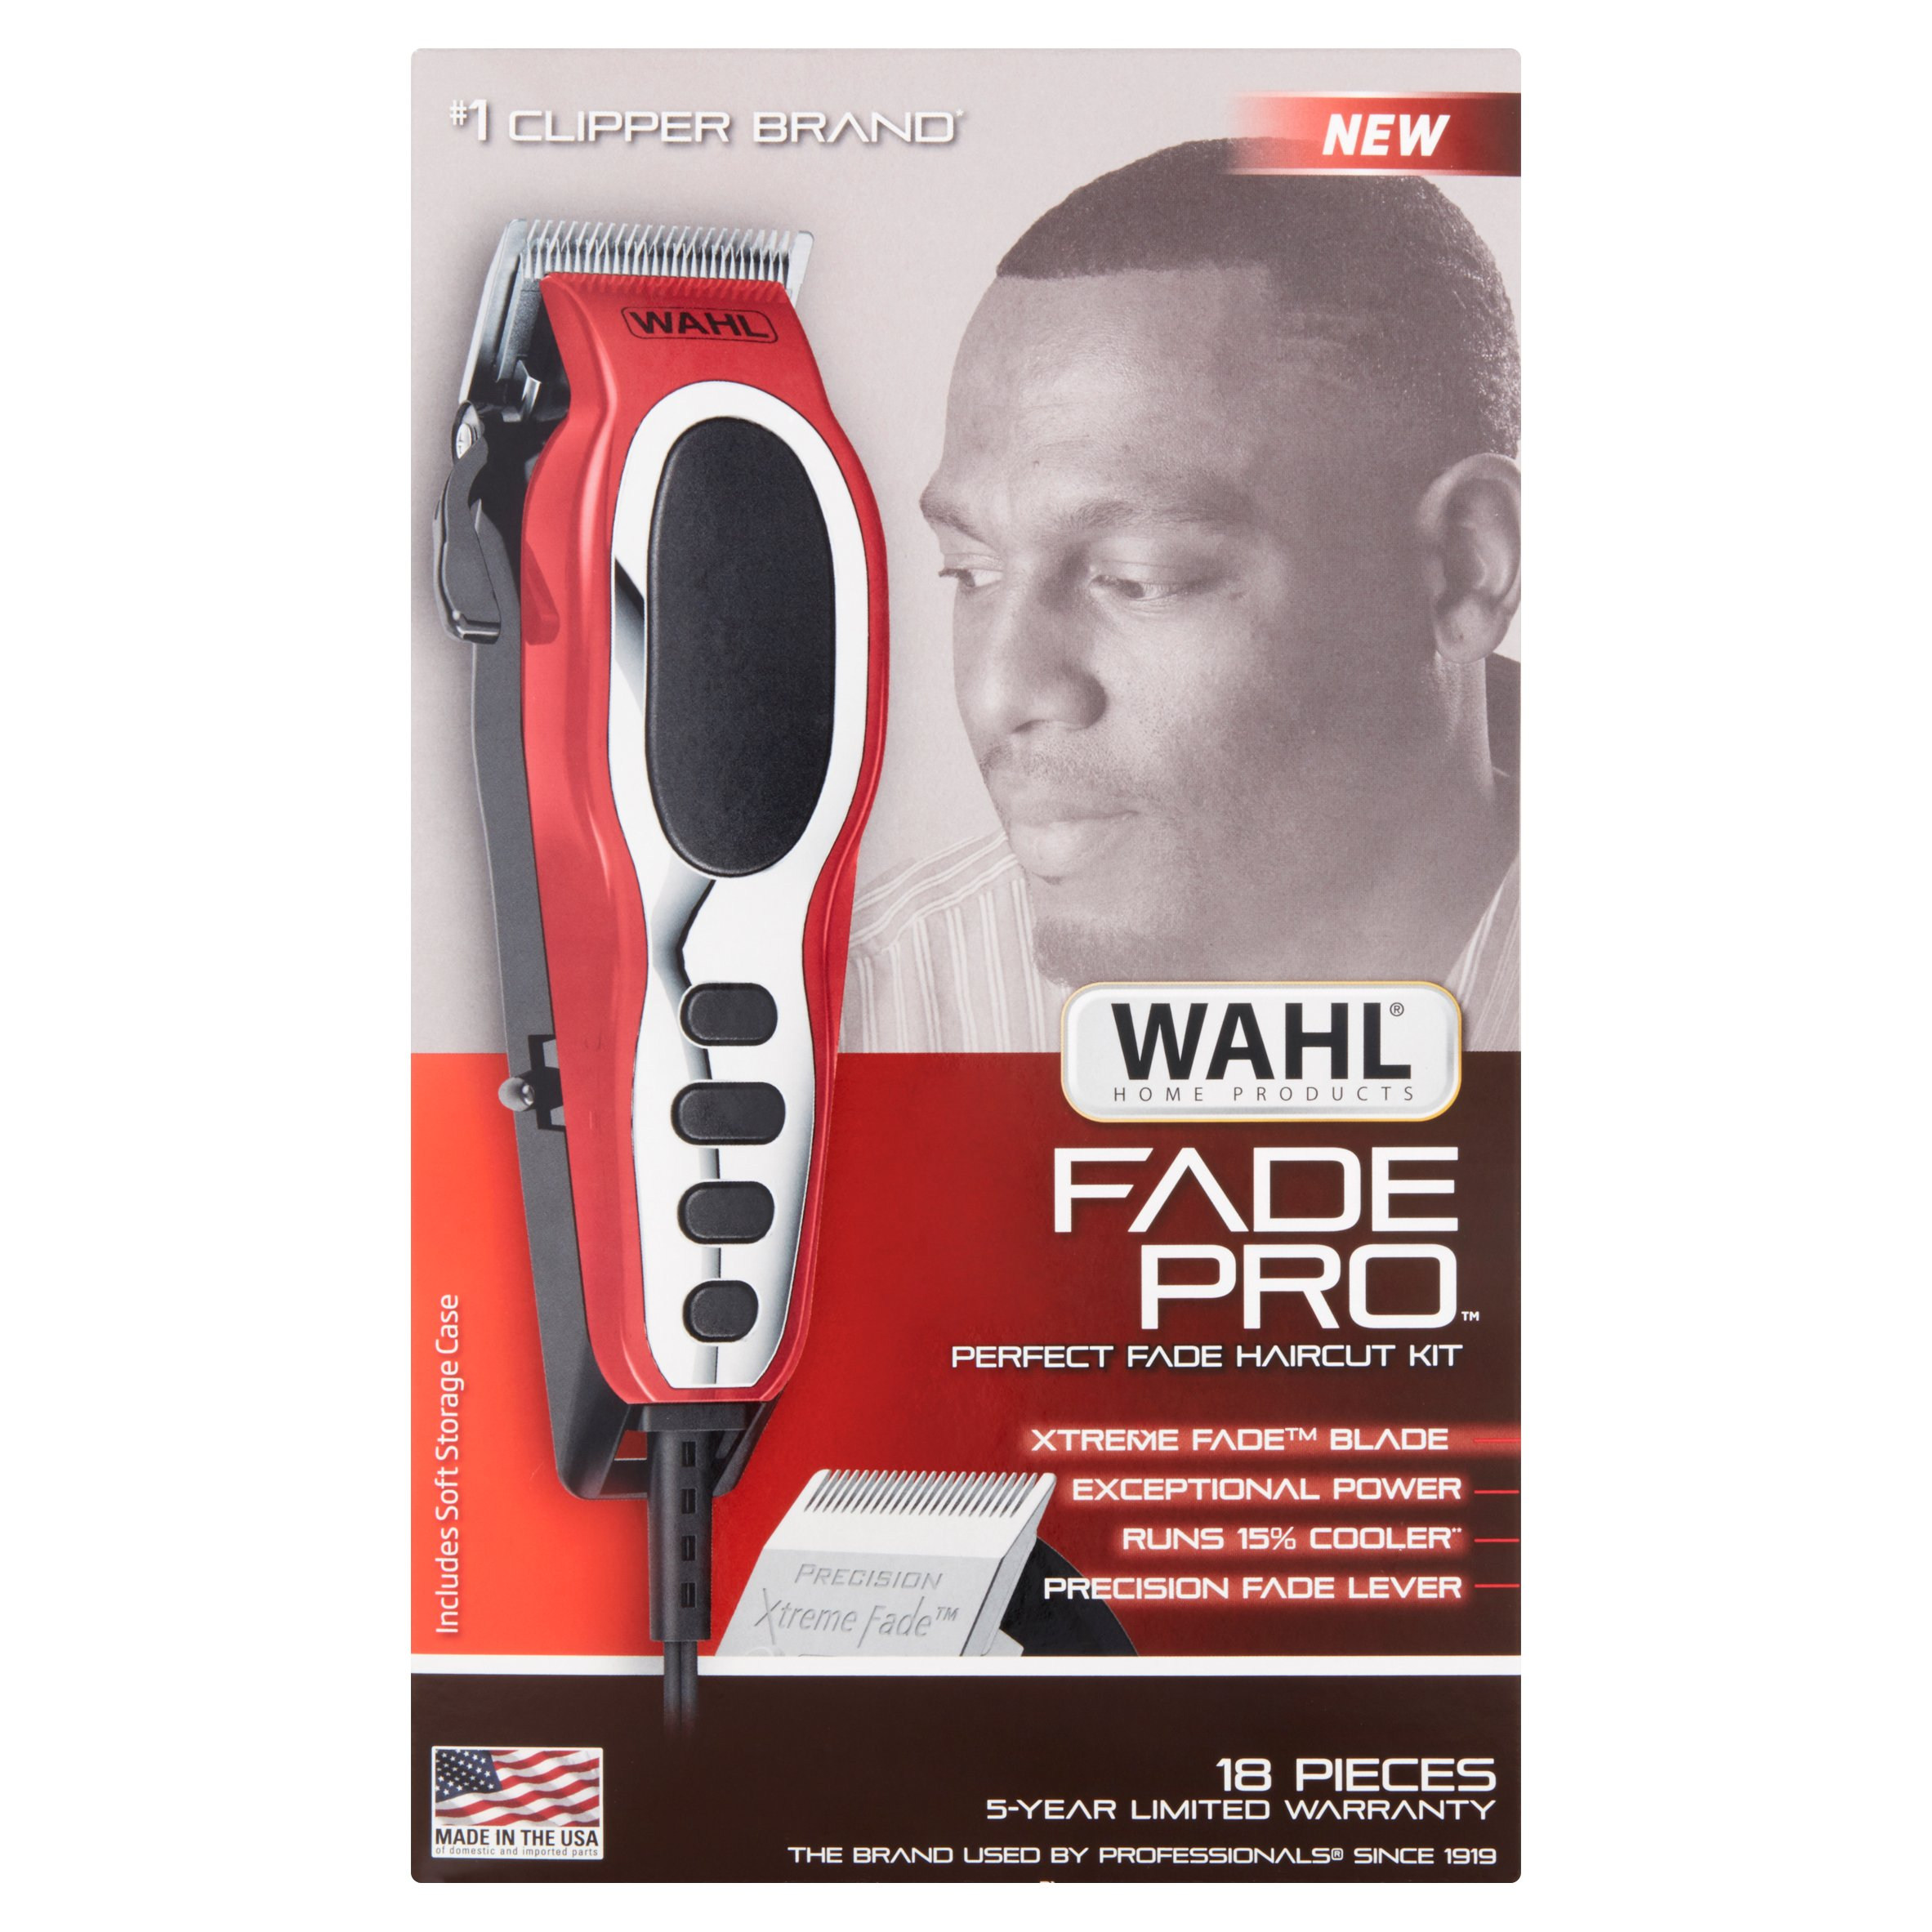 Wahl Fade Pro 18 Pieces Perfect Fade Haircut Kit